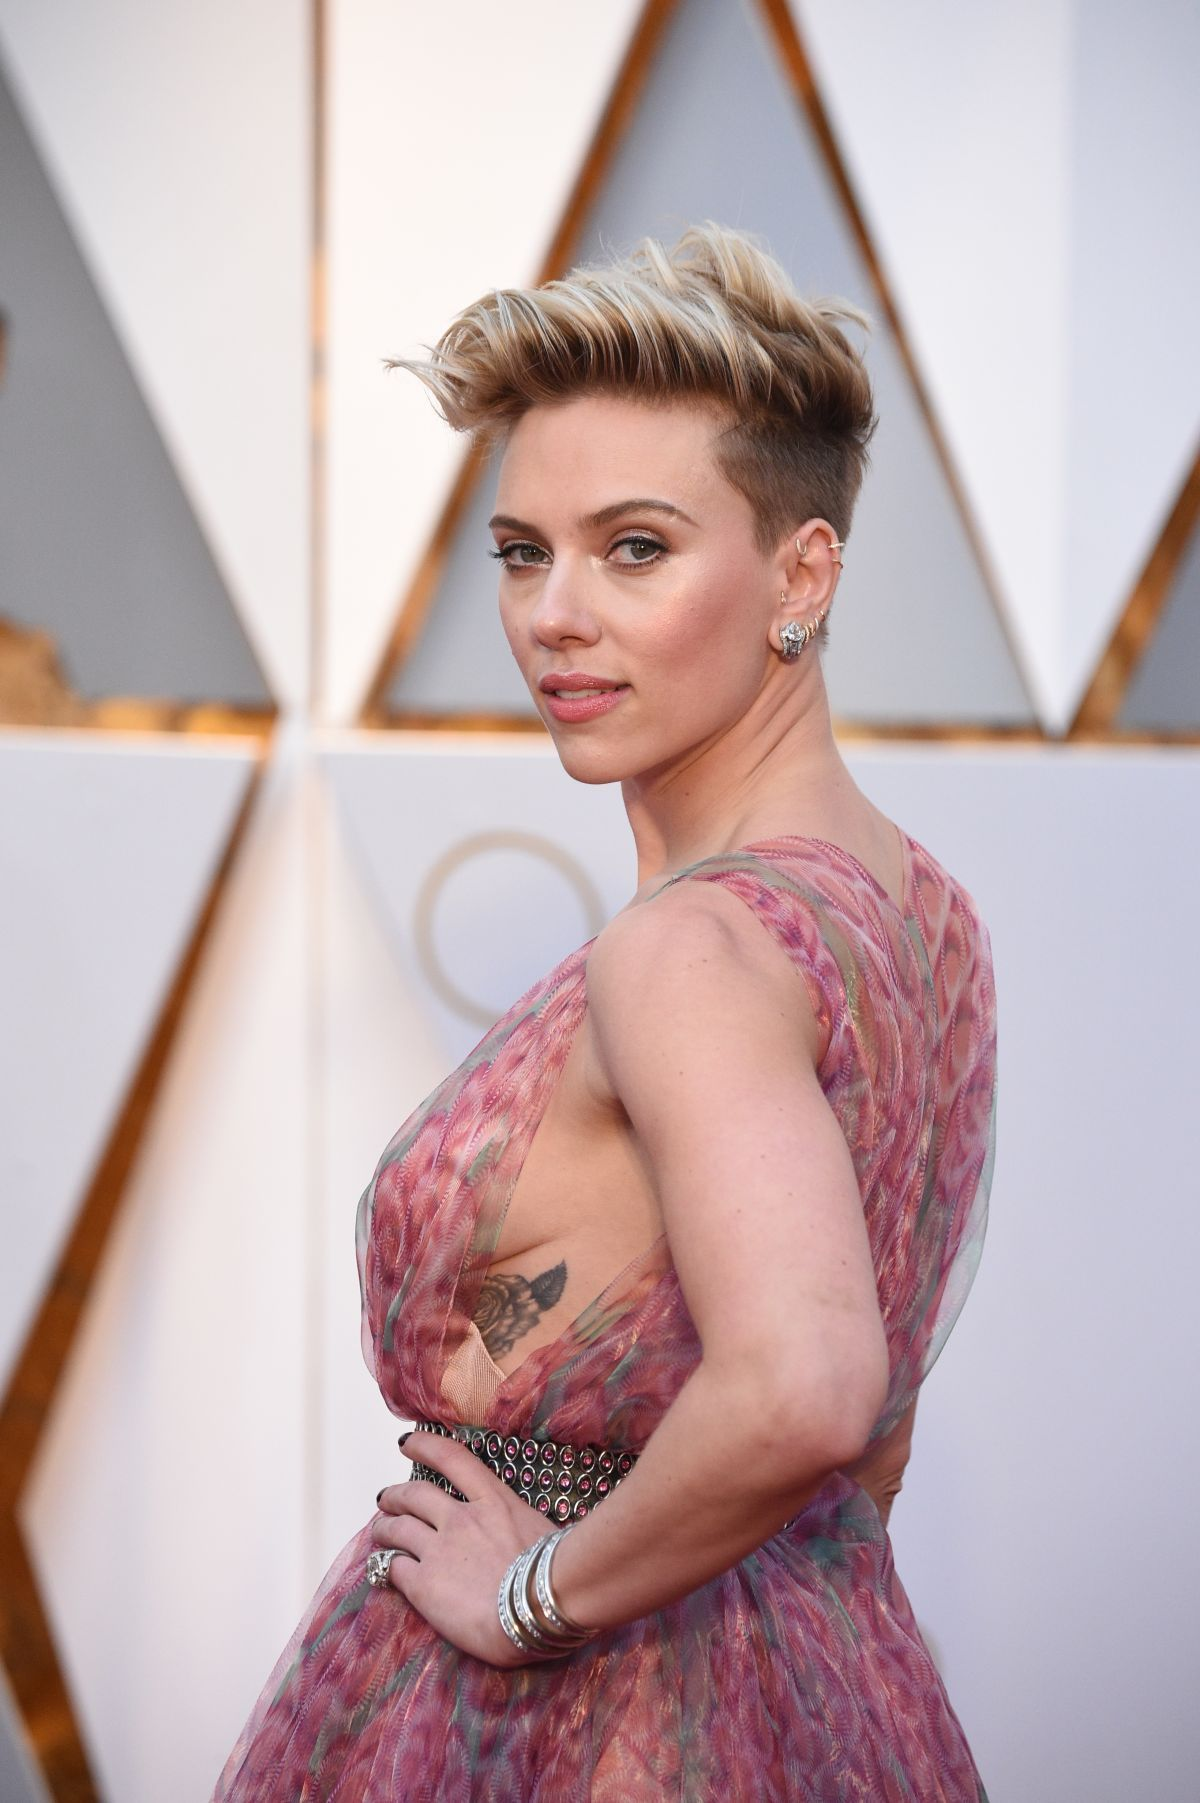 Johansson side boob, free online painful porn movies